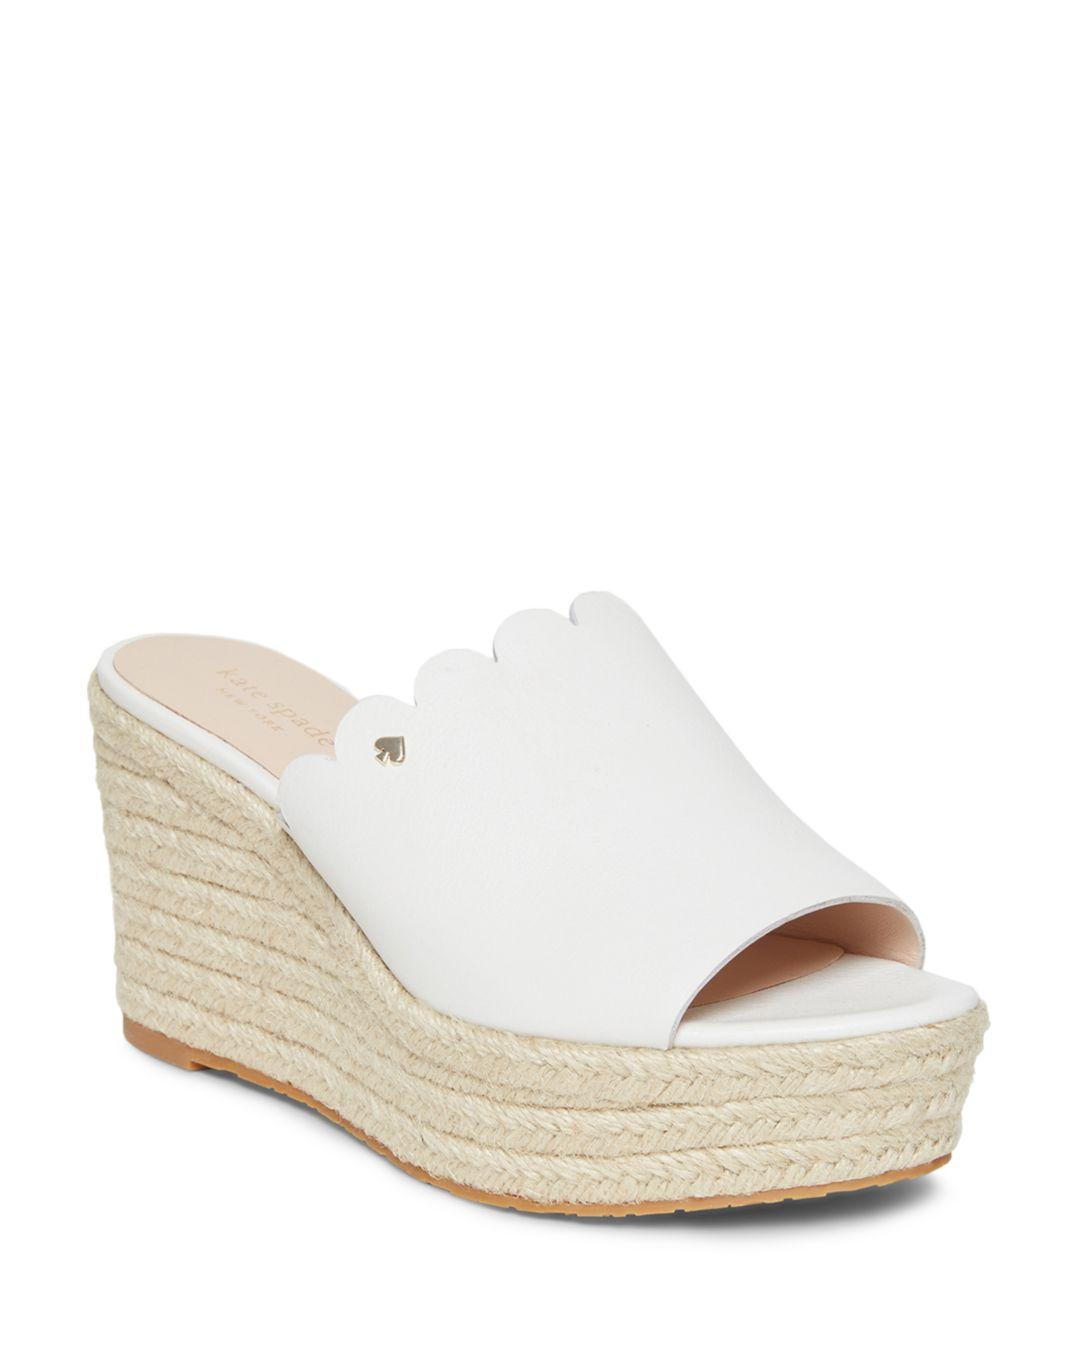 7c5bb41c3c Lyst - Kate Spade Tabby Leather Platform Espadrilles in White